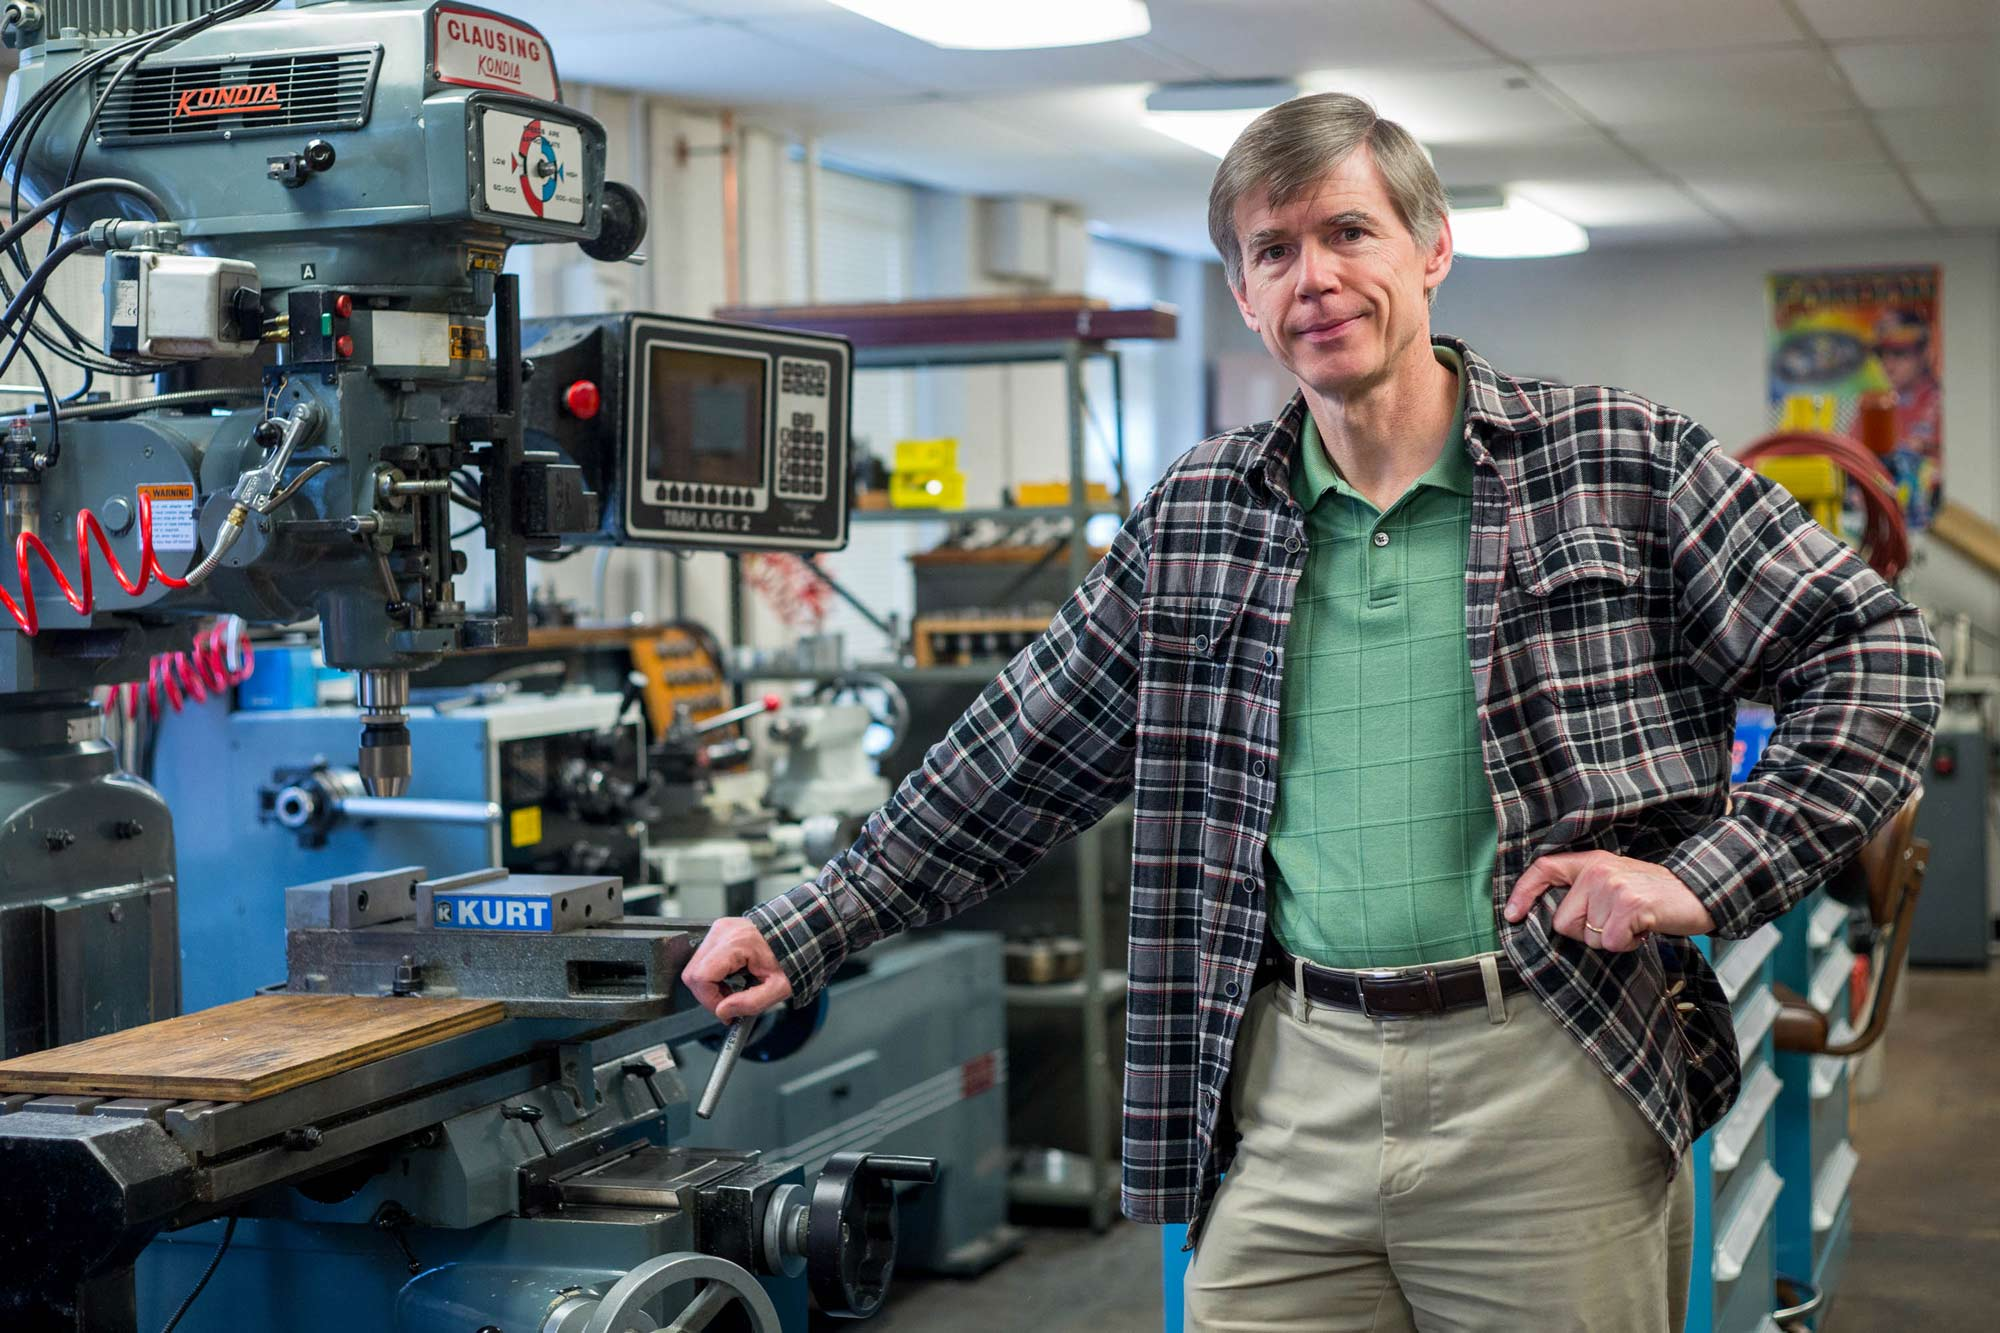 Astronomer Mike Skrutskie heads a UVA lab that designs astronomical instruments.